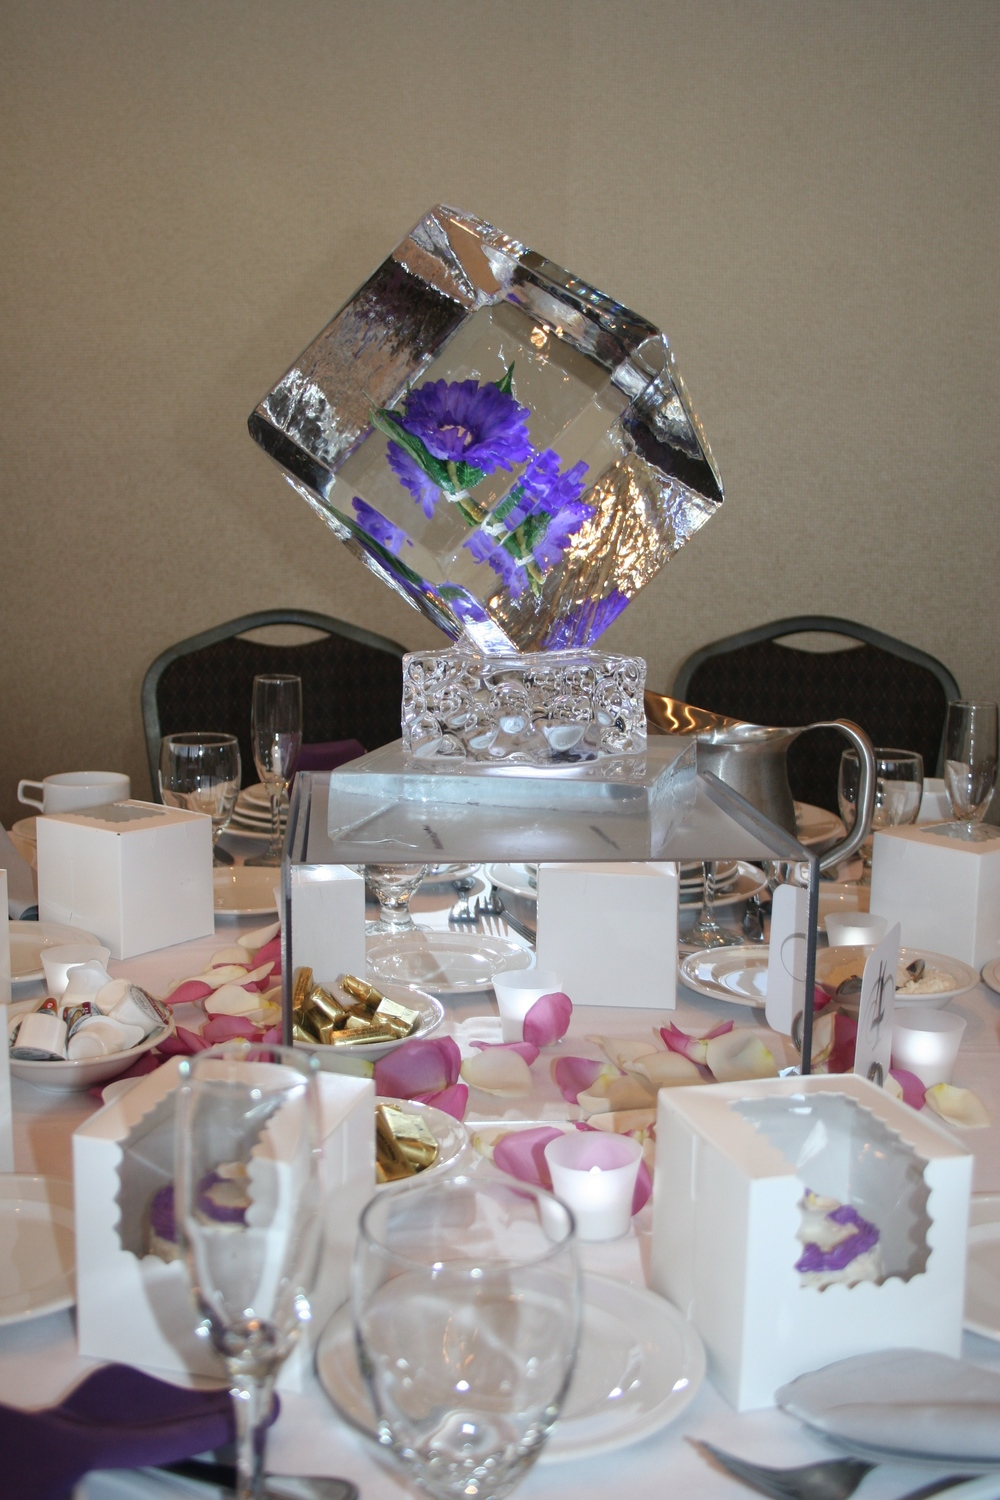 Ice Sculpture-Tabletop-Purple Flower.jpg